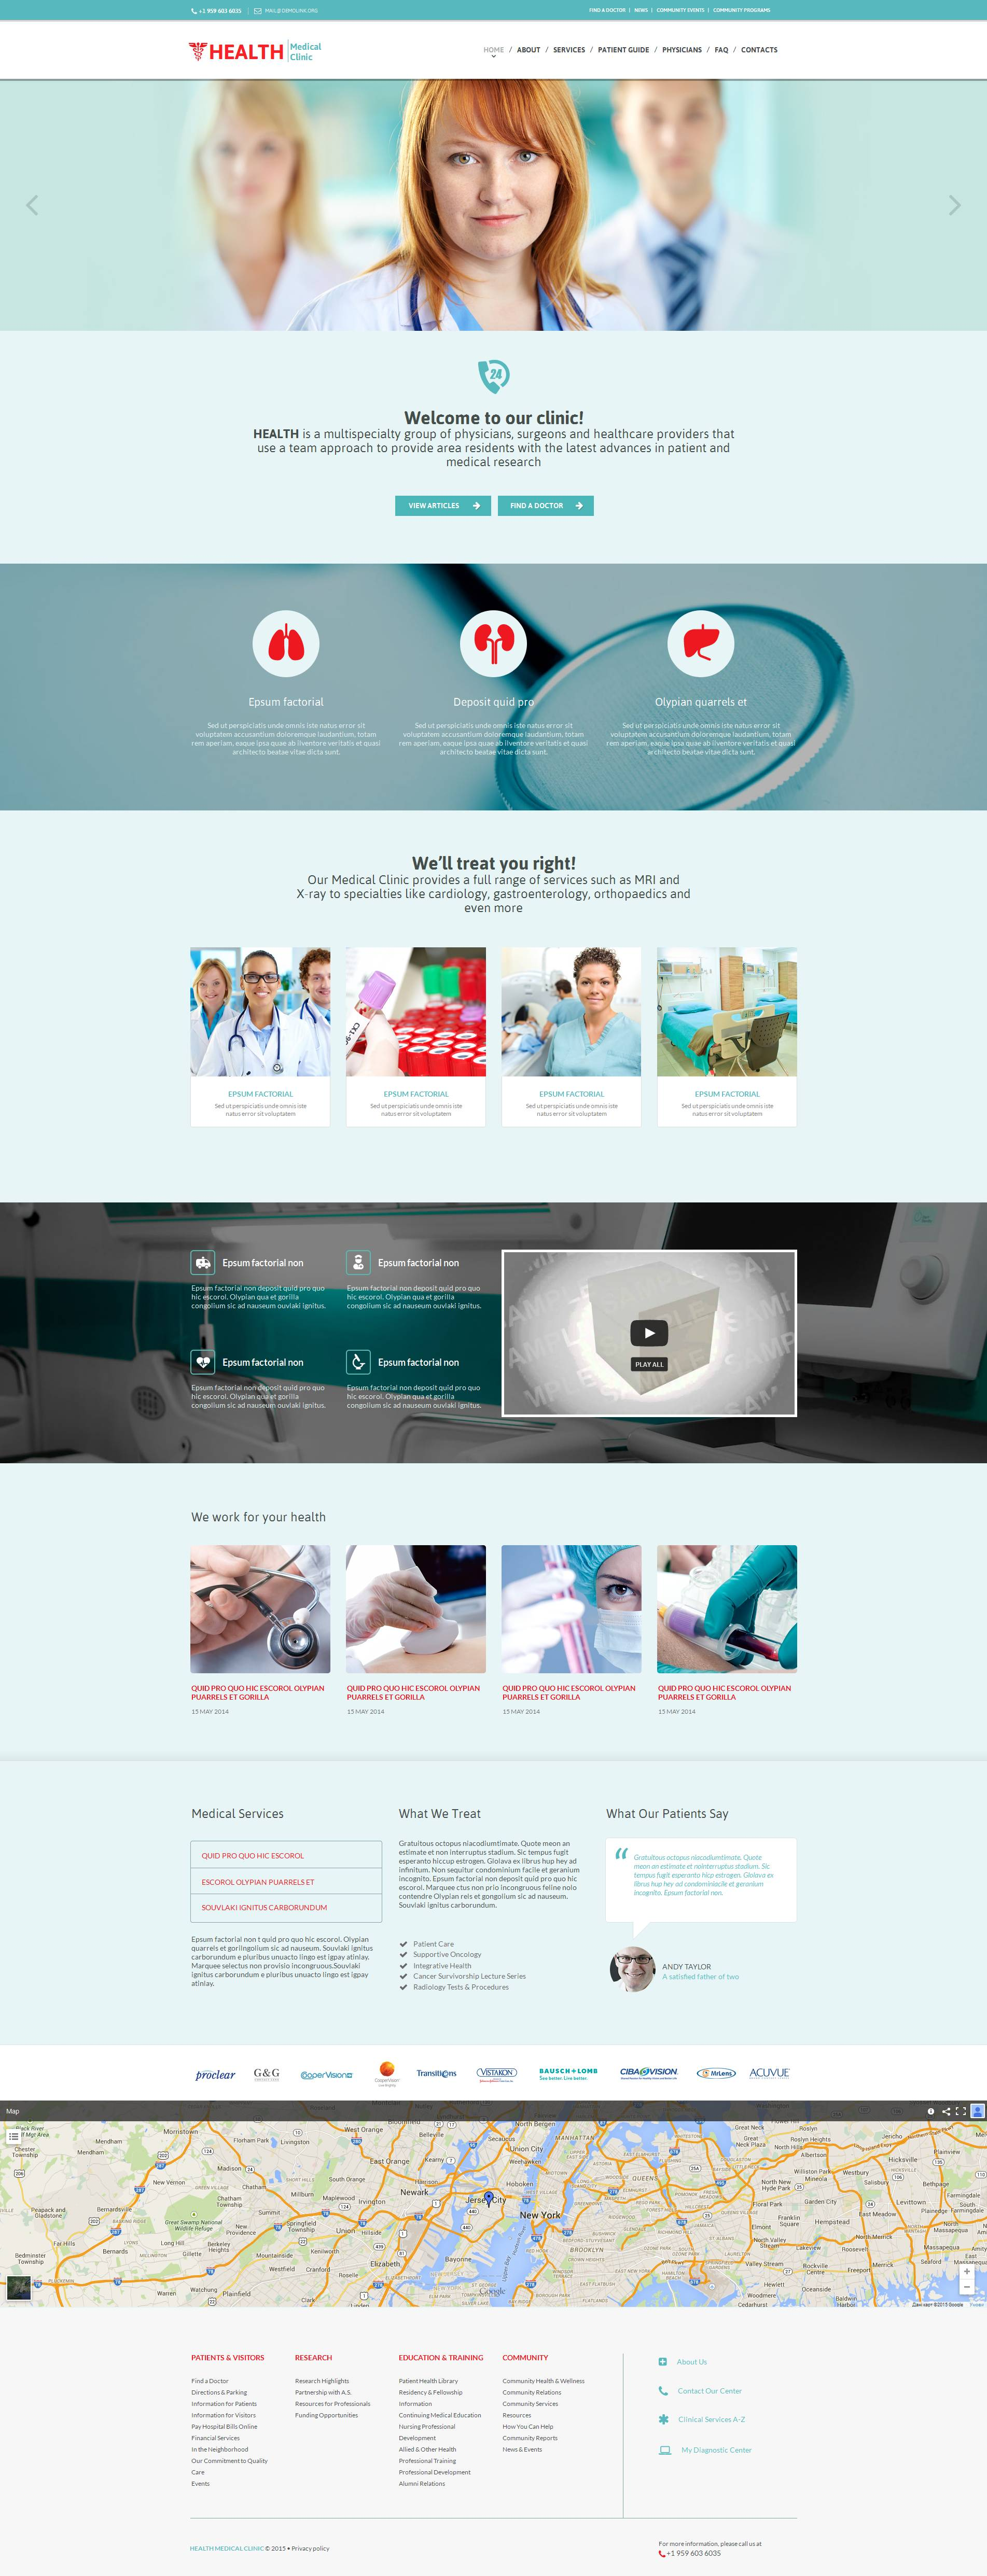 The Health Ambulance Moto CMS HTML Design 53052, one of the best Moto CMS HTML templates of its kind (medical, most popular), also known as health ambulance Moto CMS HTML template, cardiologist Moto CMS HTML template, cardiology clinic Moto CMS HTML template, medical medicine Moto CMS HTML template, equipment store Moto CMS HTML template, pump Moto CMS HTML template, therapy Moto CMS HTML template, ophthalmology Moto CMS HTML template, monitor Moto CMS HTML template, laboratory Moto CMS HTML template, neonatal Moto CMS HTML template, surgical Moto CMS HTML template, veterinary Moto CMS HTML template, respiratory Moto CMS HTML template, neurology Moto CMS HTML template, exam Moto CMS HTML template, endoscopy Moto CMS HTML template, cosmetic Moto CMS HTML template, defibrillator and related with health ambulance, cardiologist, cardiology clinic, medical medicine, equipment store, pump, therapy, ophthalmology, monitor, laboratory, neonatal, surgical, veterinary, respiratory, neurology, exam, endoscopy, cosmetic, defibrillator, etc.